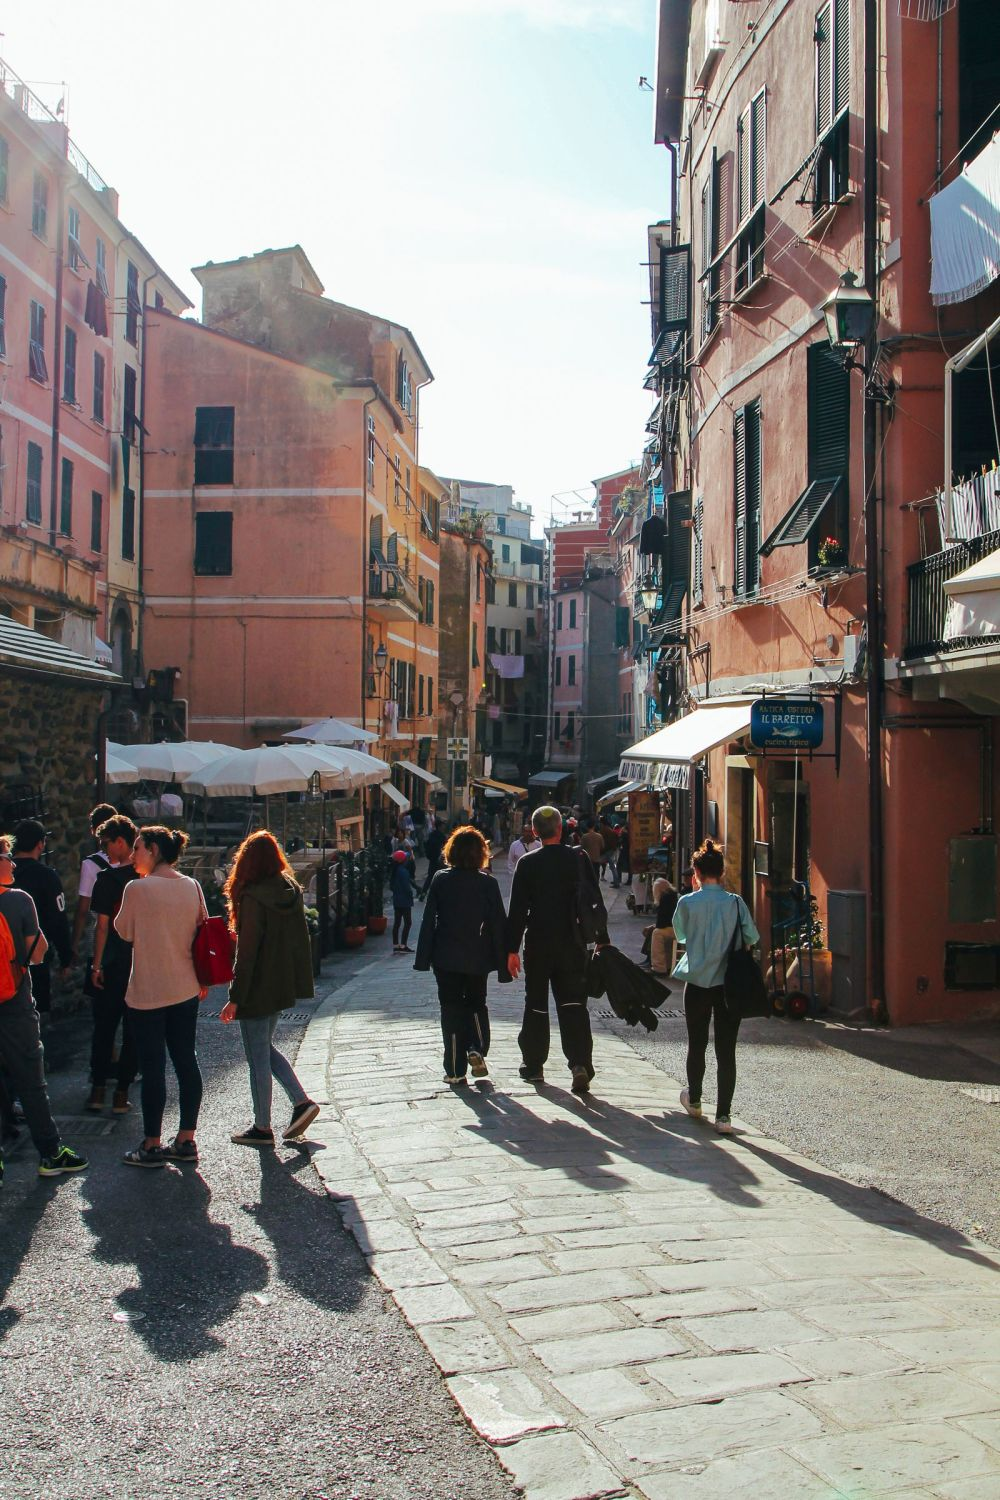 Vernazza in Cinque Terre, Italy - The Photo Diary! [4 of 5] (32)